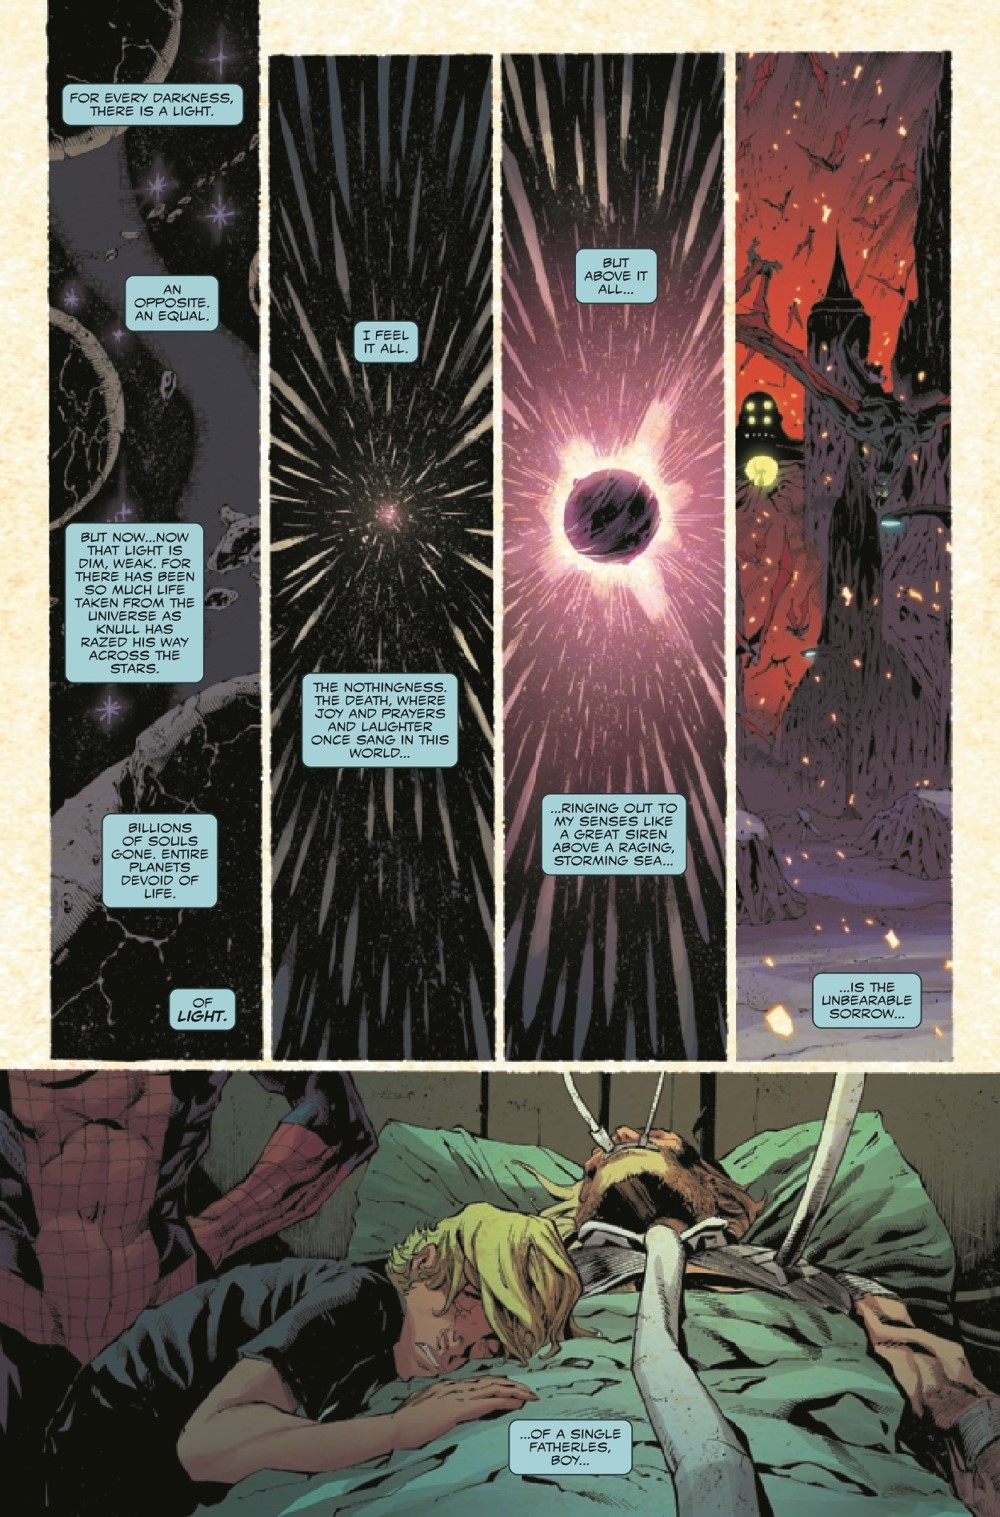 KINGINBLACK2020003_Preview-3 ComicList Previews: KING IN BLACK #3 (OF 5)